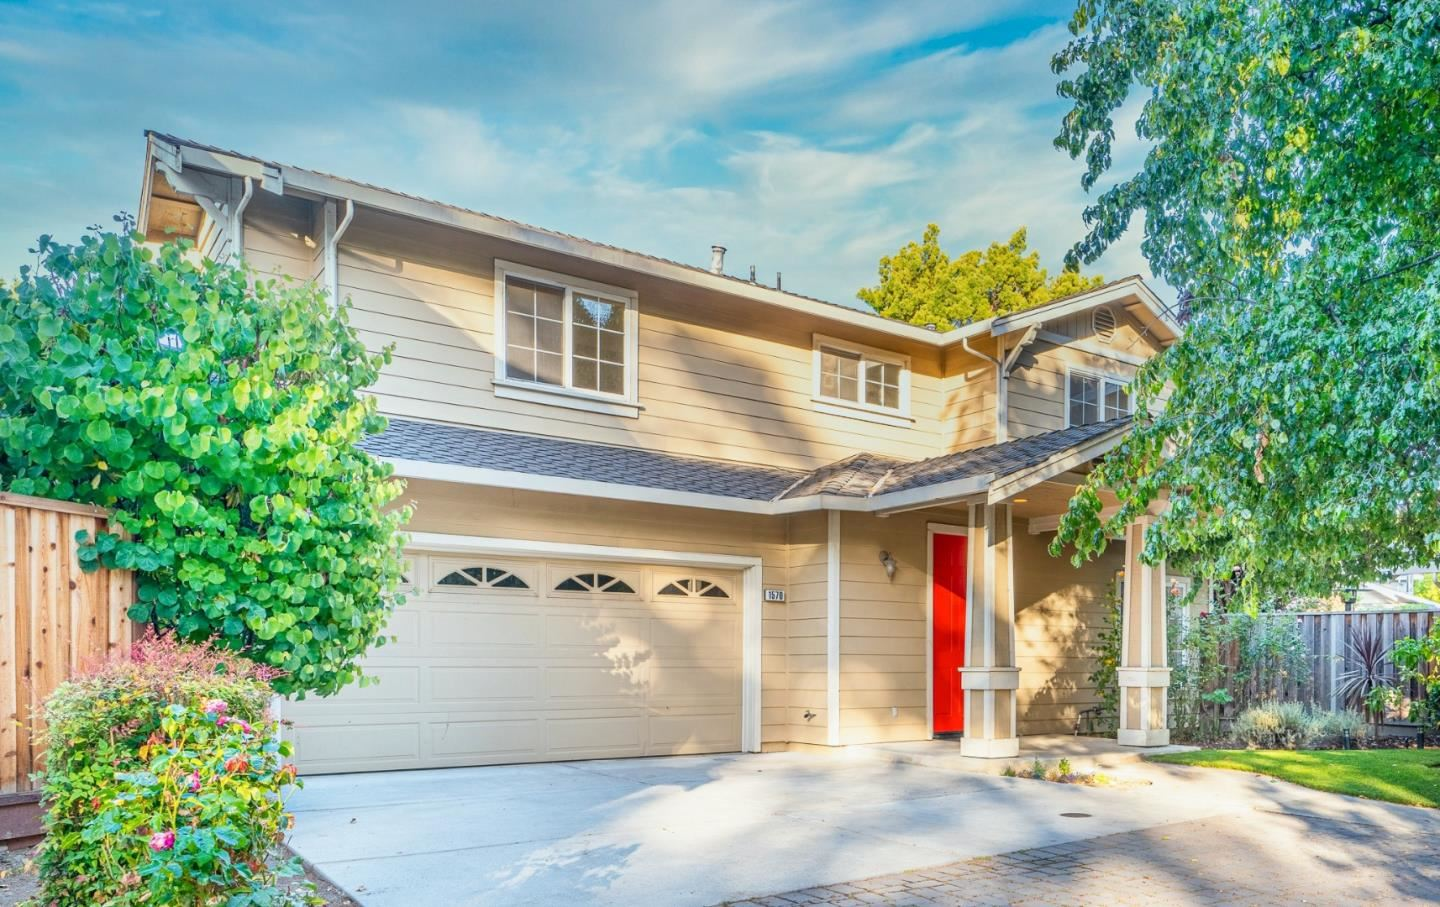 Photo for 1570 Layla Court, MOUNTAIN VIEW, CA 94041 (MLS # ML81847963)